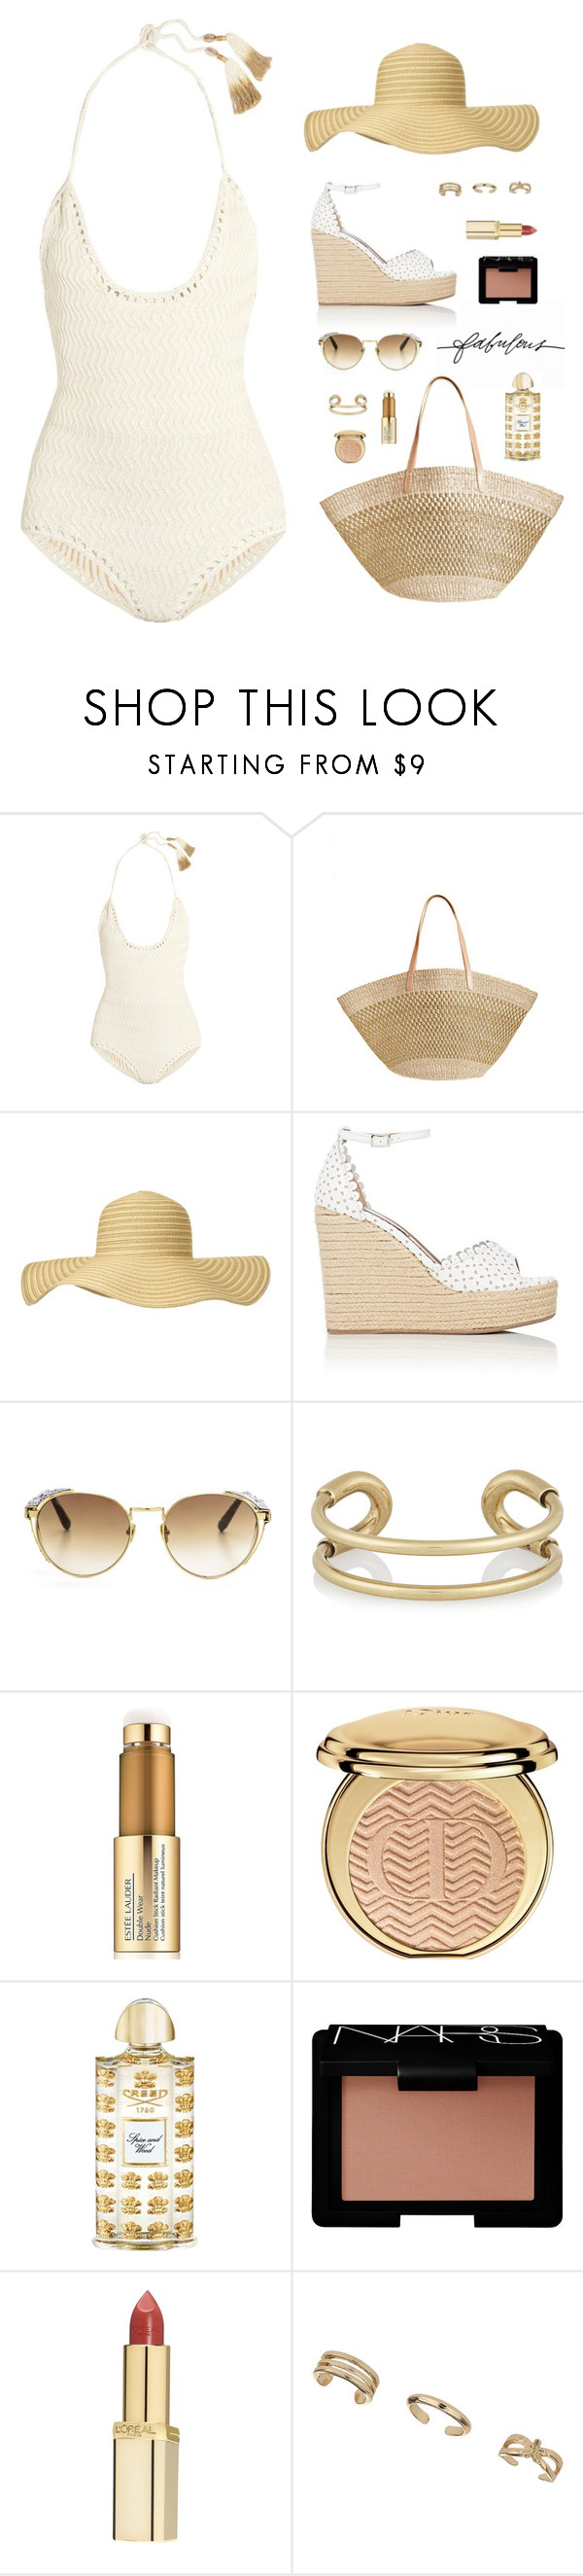 """""""""""The very least you can do in your life is figure out what you hope for. And the most you can do is live inside that hope. Not admire it from a distance but live right in it, under its roof."""" -Barbara Kingsolver"""" by are-you-with-me ❤ liked on Polyvore featuring Stella & Dot, SHE MADE ME, Flora Bella, Phase Eight, Tabitha Simmons, Linda Farrow, Giles & Brother, Estée Lauder, Christian Dior and Creed"""